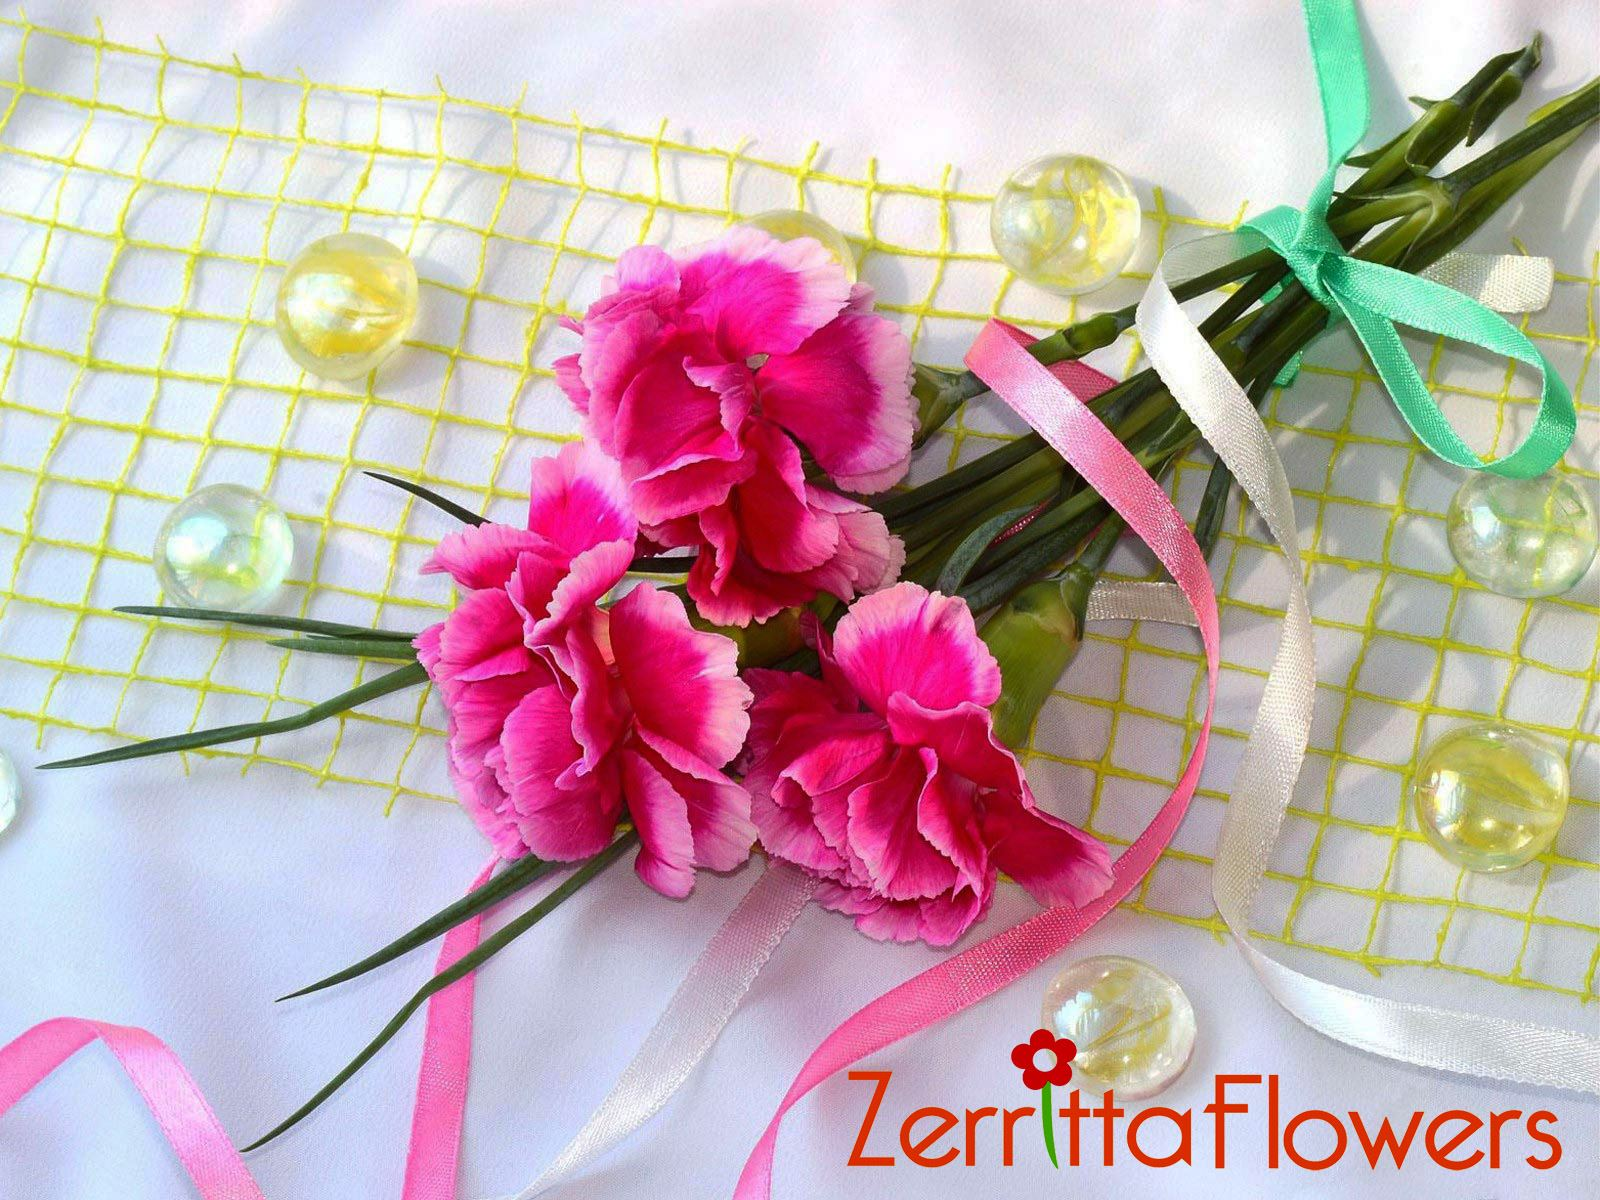 Flower Delivery Nyc Cheap Zerritta Flowers The Best Place In Town To